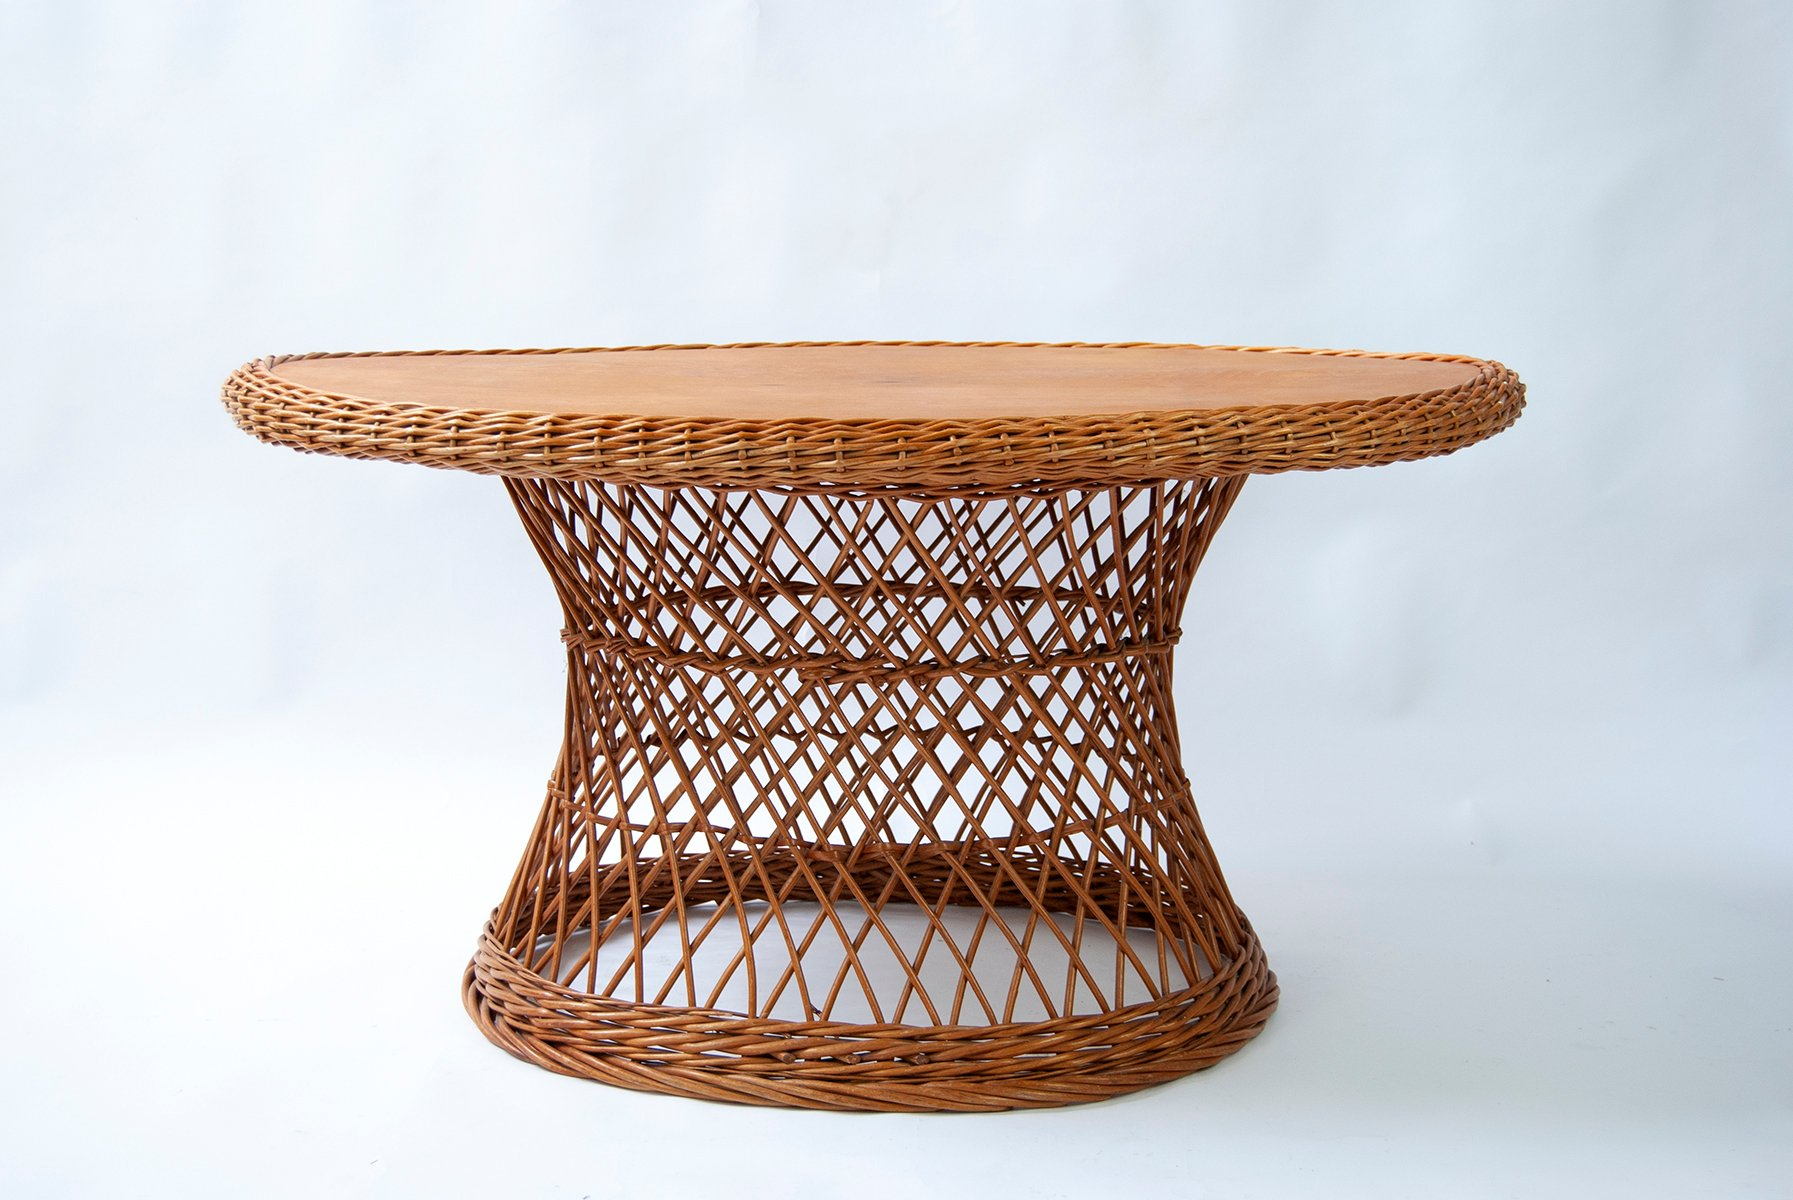 Couchtisch Asia Style Rattan Gallery Of Small Rattan Coffee And Tea Carafe In Dark